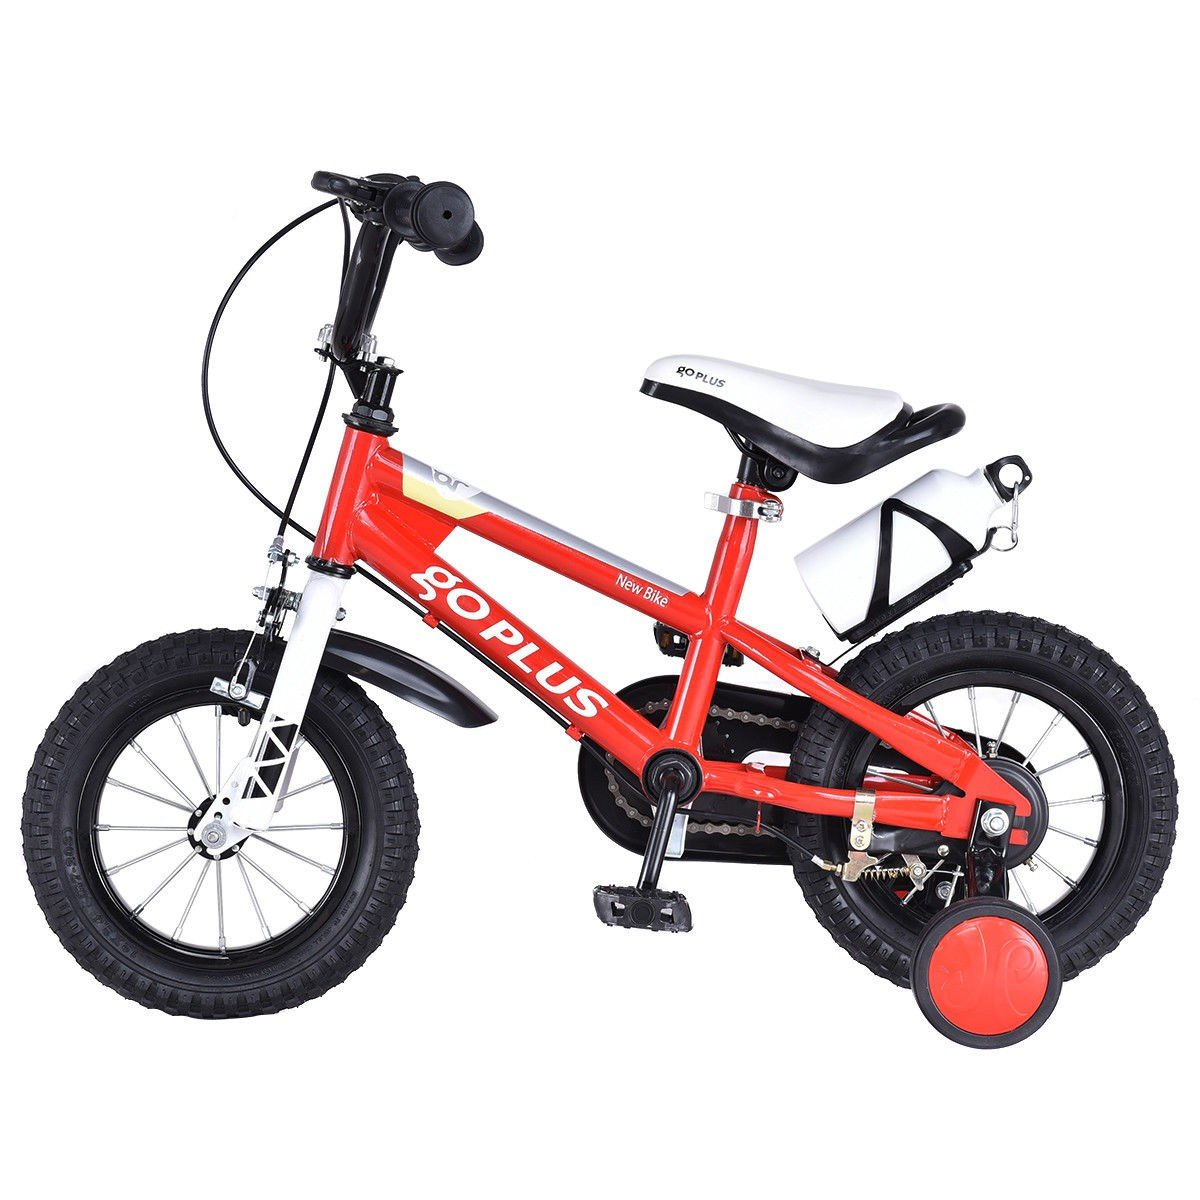 MD Group Kids Bicycle 12'' Freestyle Red Metal Frame Adjustable with Training Wheels